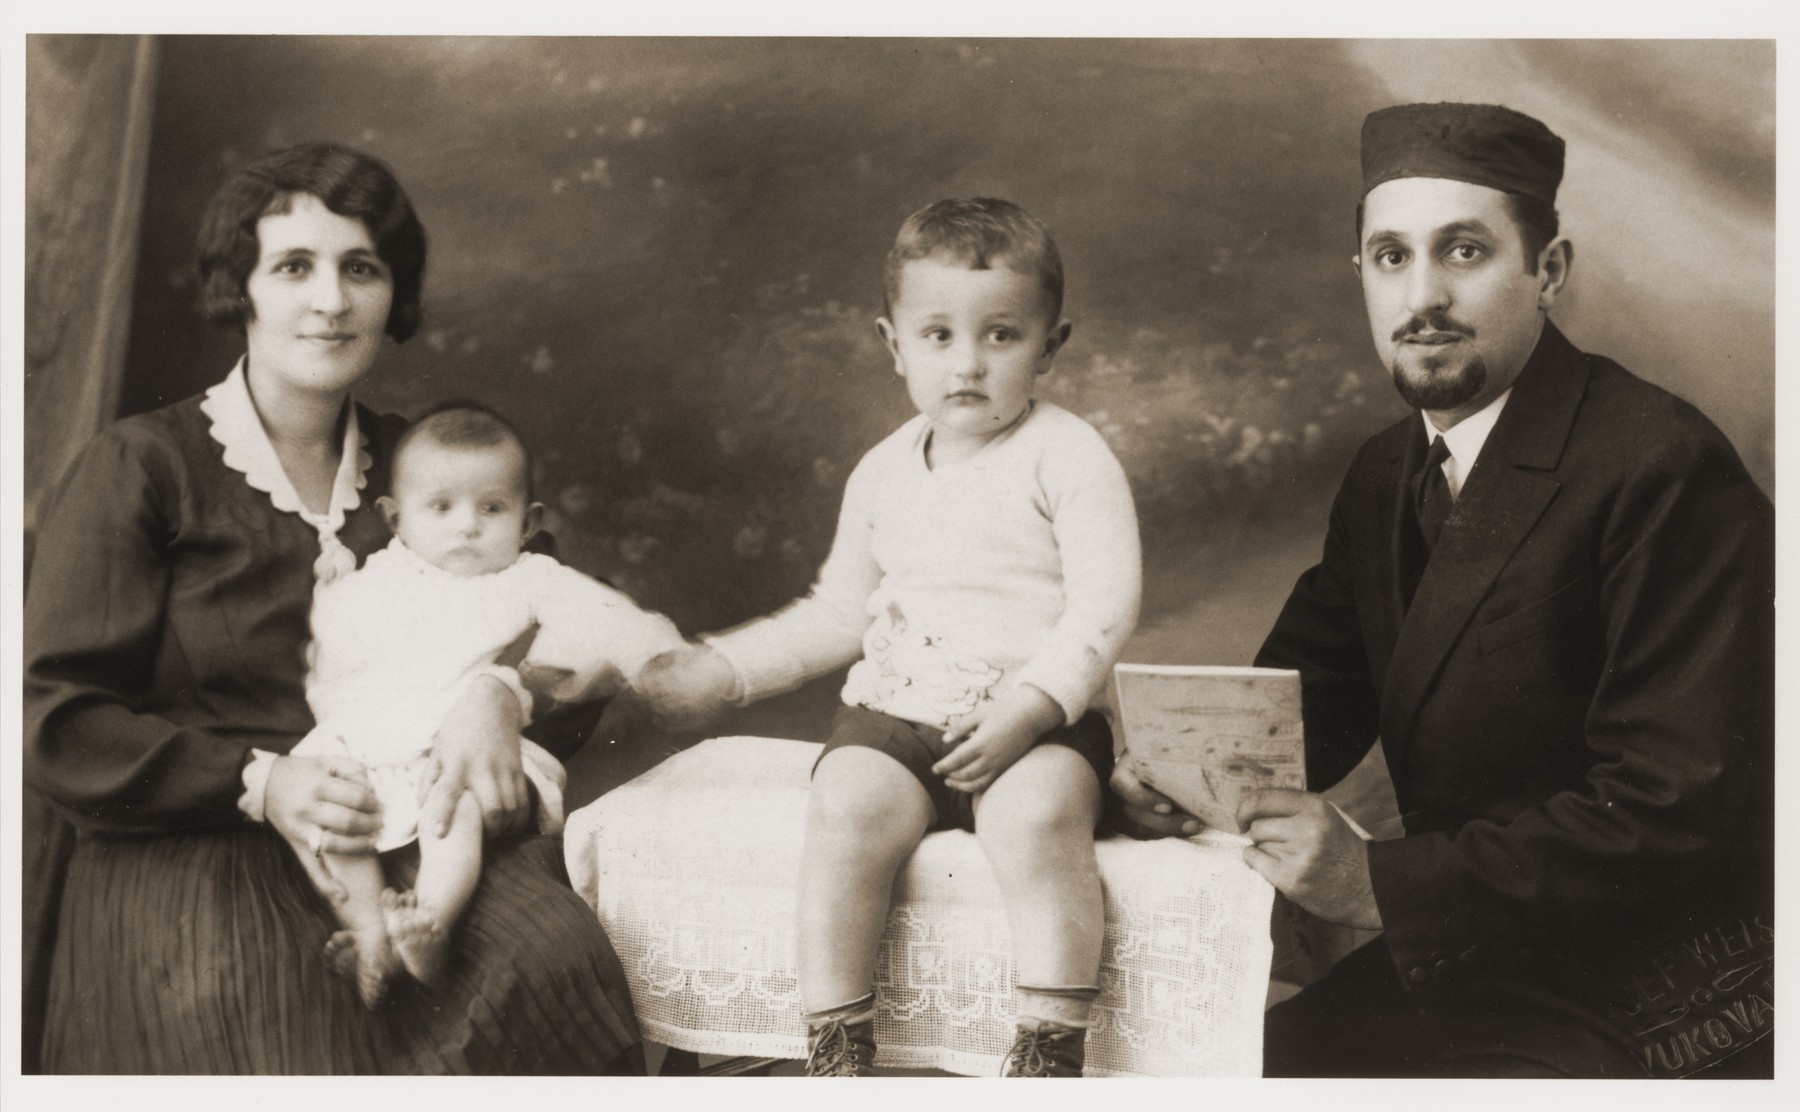 Portrait of Helen Berkovic Goldberger, Cantor Eugene Goldberger and their sons Milan and Leo.